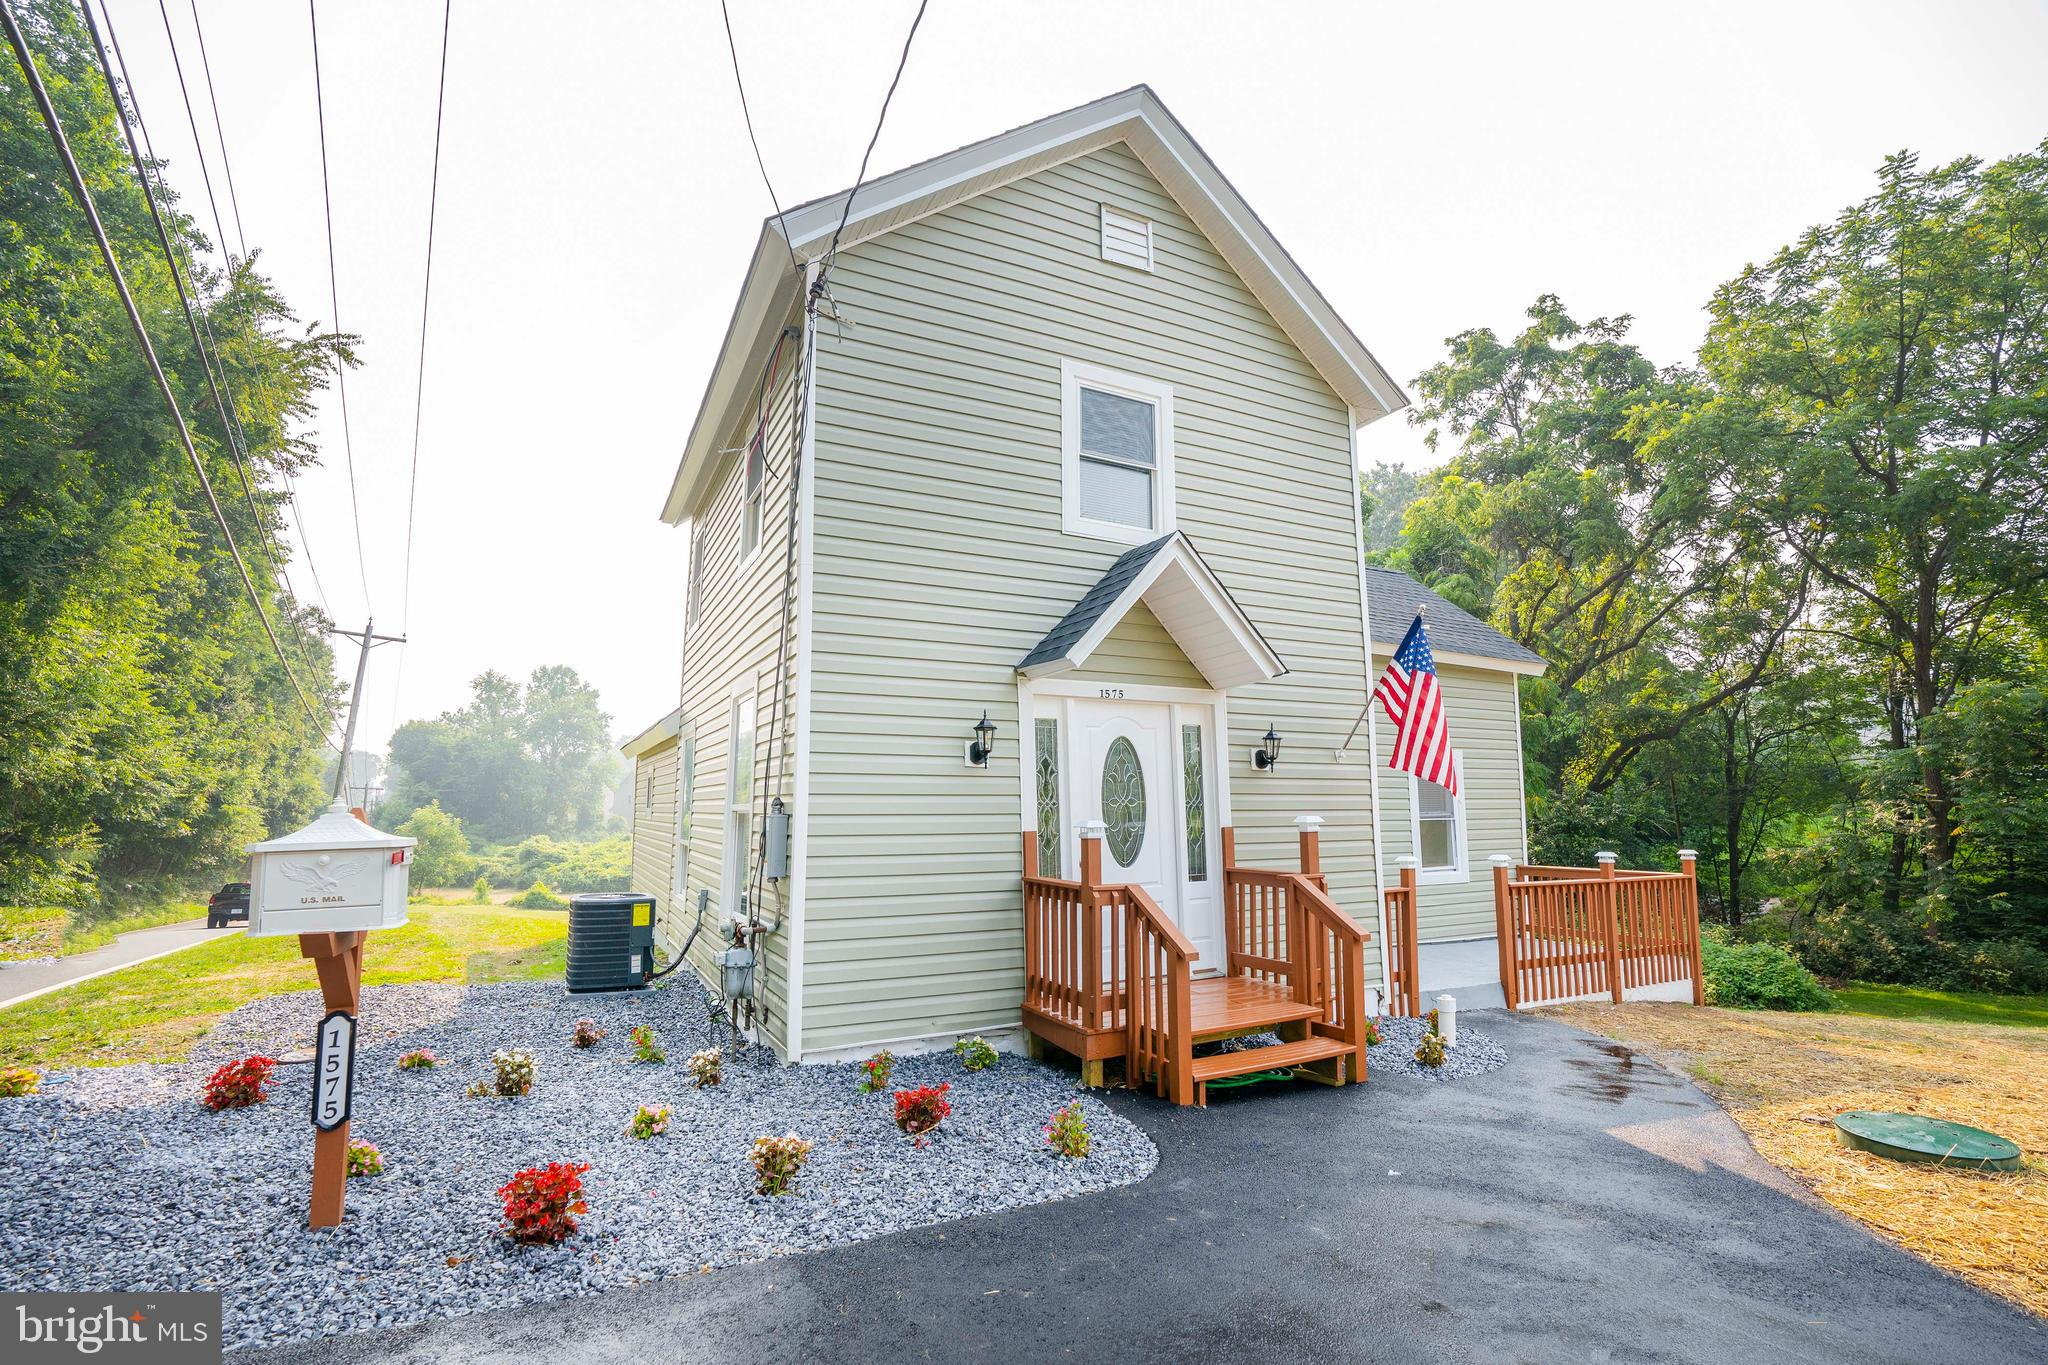 This beautiful home was completely renovated from head to toe in 2021. This home sits on one of the largest lots in the area 2 ACRES!!! The renovation includes a new septic system (2021), HVAC systems (2021), roof (2020), new kitchen appliances and granite countertops, hot water heater (2021), new flooring throughout the whole house, recessed lighting throughout much of the main floor, everything is brand new. Comfortable and inviting, the family room has a modern fireplace, it is the perfect spot for relaxation. Continue to the living room is the eat-in kitchen with new cabinets, stainless steel appliances, and a granite oversized island. The sliding glass doors lead to a new deck with incredible views overlooking the rear yard.  The attraction of this home continues to the upper level with 2 bedrooms and 1 full bath. There is no lack of space in this house that does not provide a view of the private backyard. Continue the entertaining outside in the spectacular 2 acres patio where you can park your cars, boat, motor home without or travel trailer without restrictions. Located within the Red Clay School District and close to major roads, restaurants, schools, parks, and entertainment, it does not get any better. Please hurry and schedule an appointment today! You will not be disappointed. Easy to show with immediate confirmation.